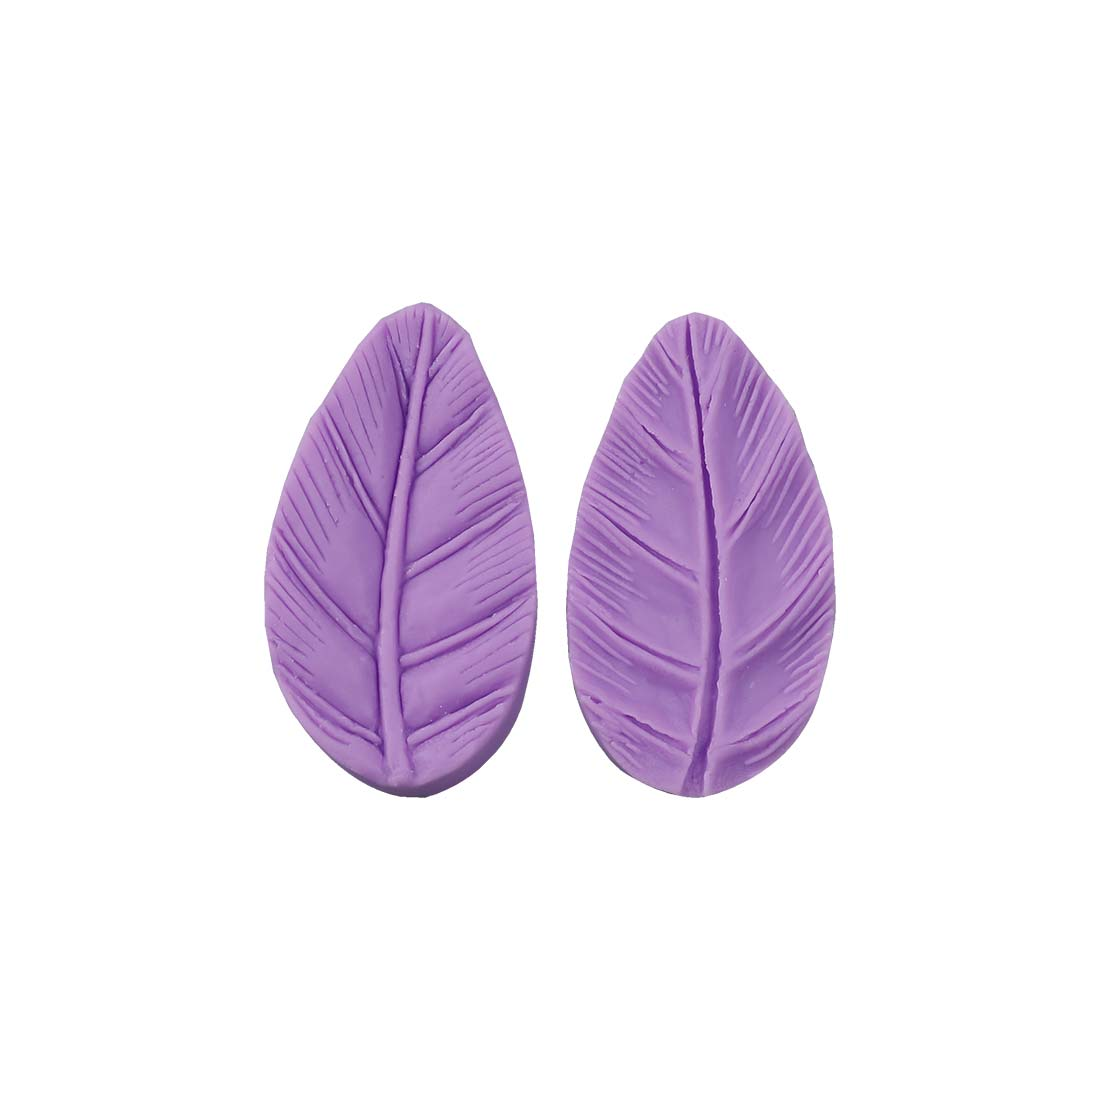 Ambrosia Leaf Shaped Silicone Fondant Impression Mould, Cake Decorating Tool, Dishwasher-Microwave-Oven-Freezer Safe